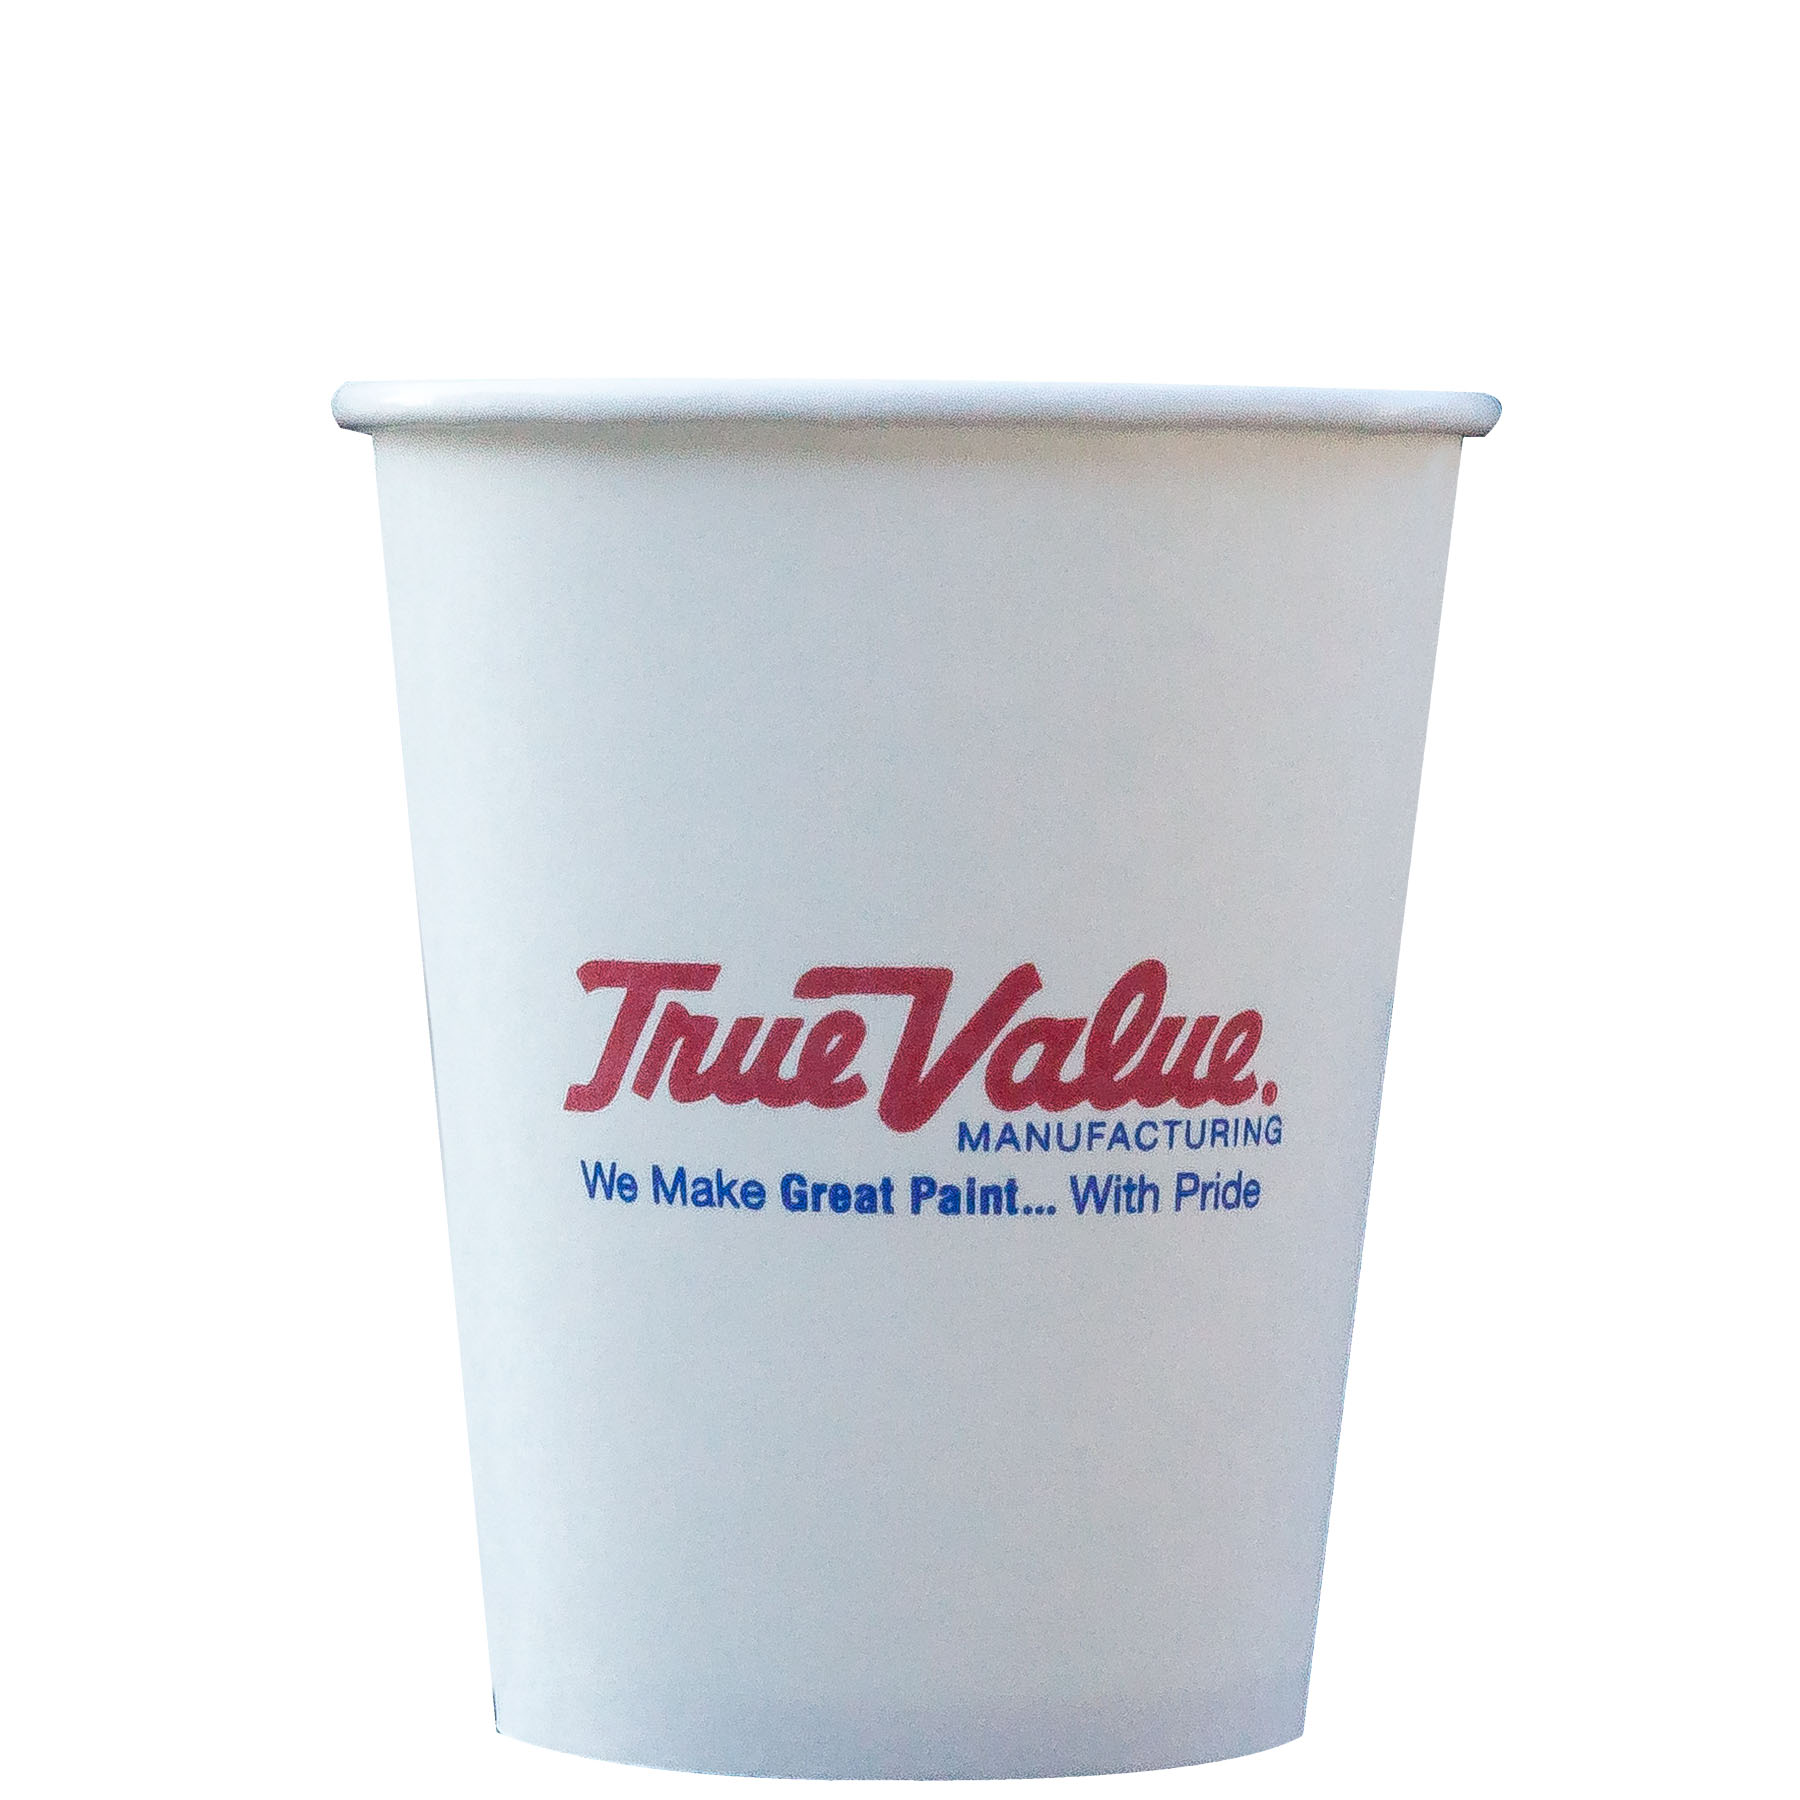 8 Oz. Hot/Cold Paper Cups - The 500 Line